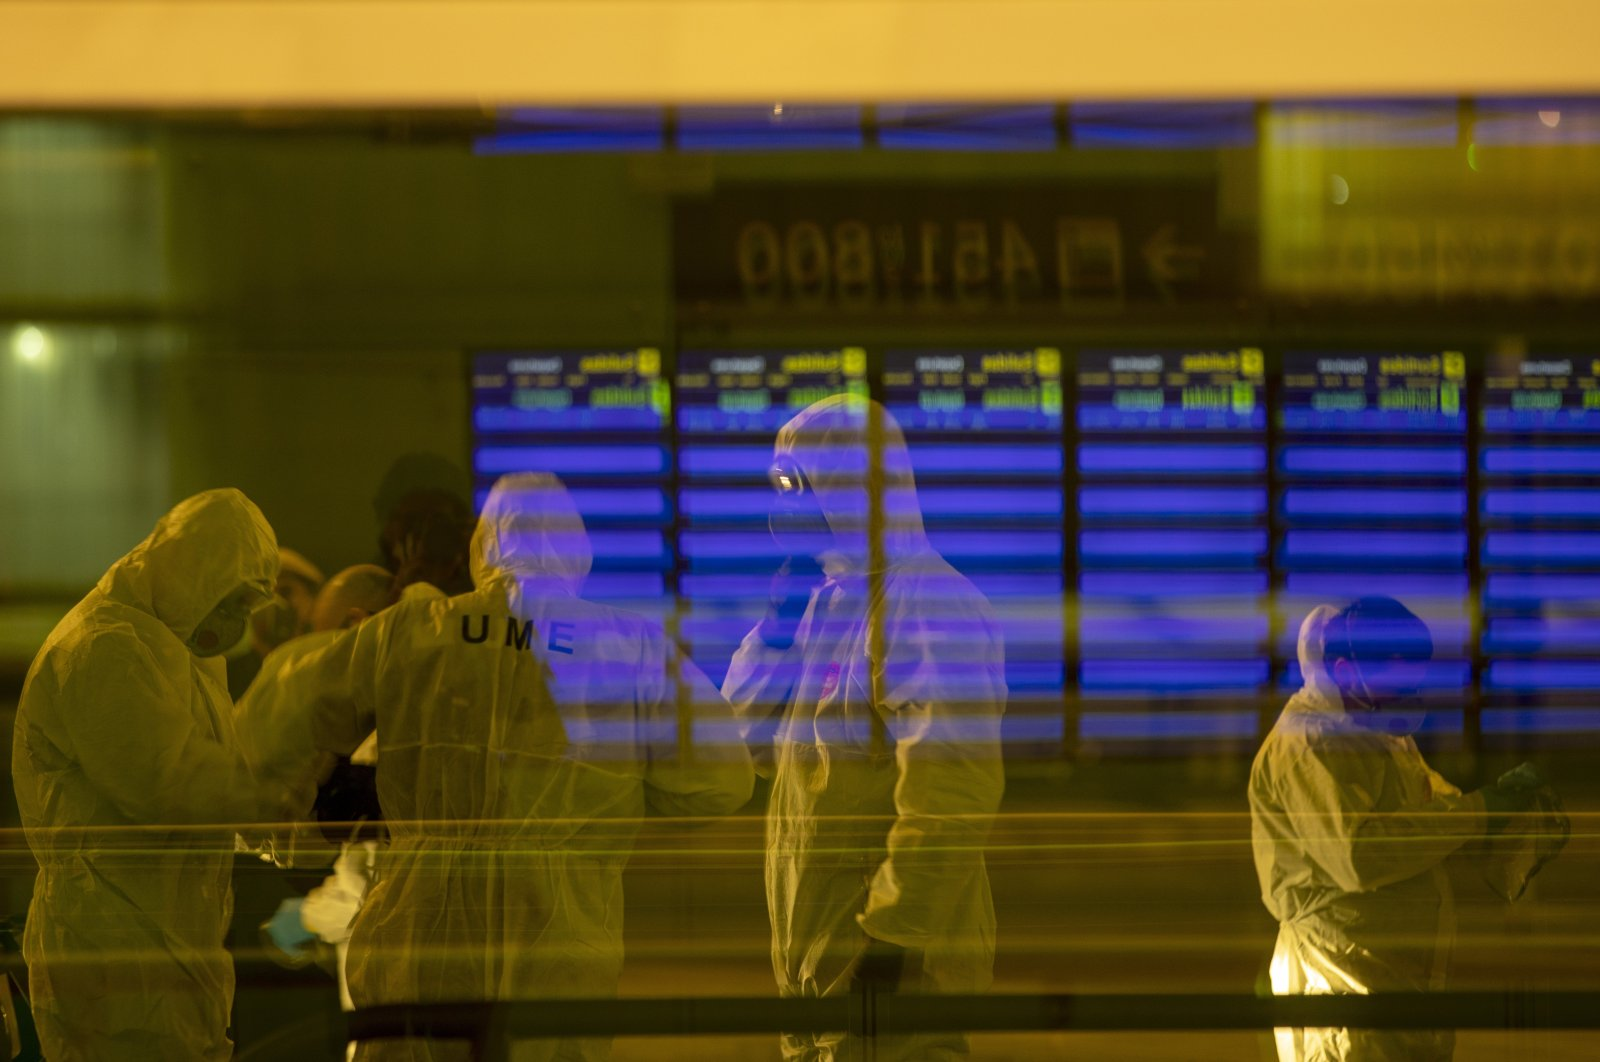 Spanish UME (Emergency Army Unit) soldiers disinfect a terminal to prevent the spread of the coronavirus at an airport in Barcelona, Spain, Thursday, March 19, 2020. (AP Photo)